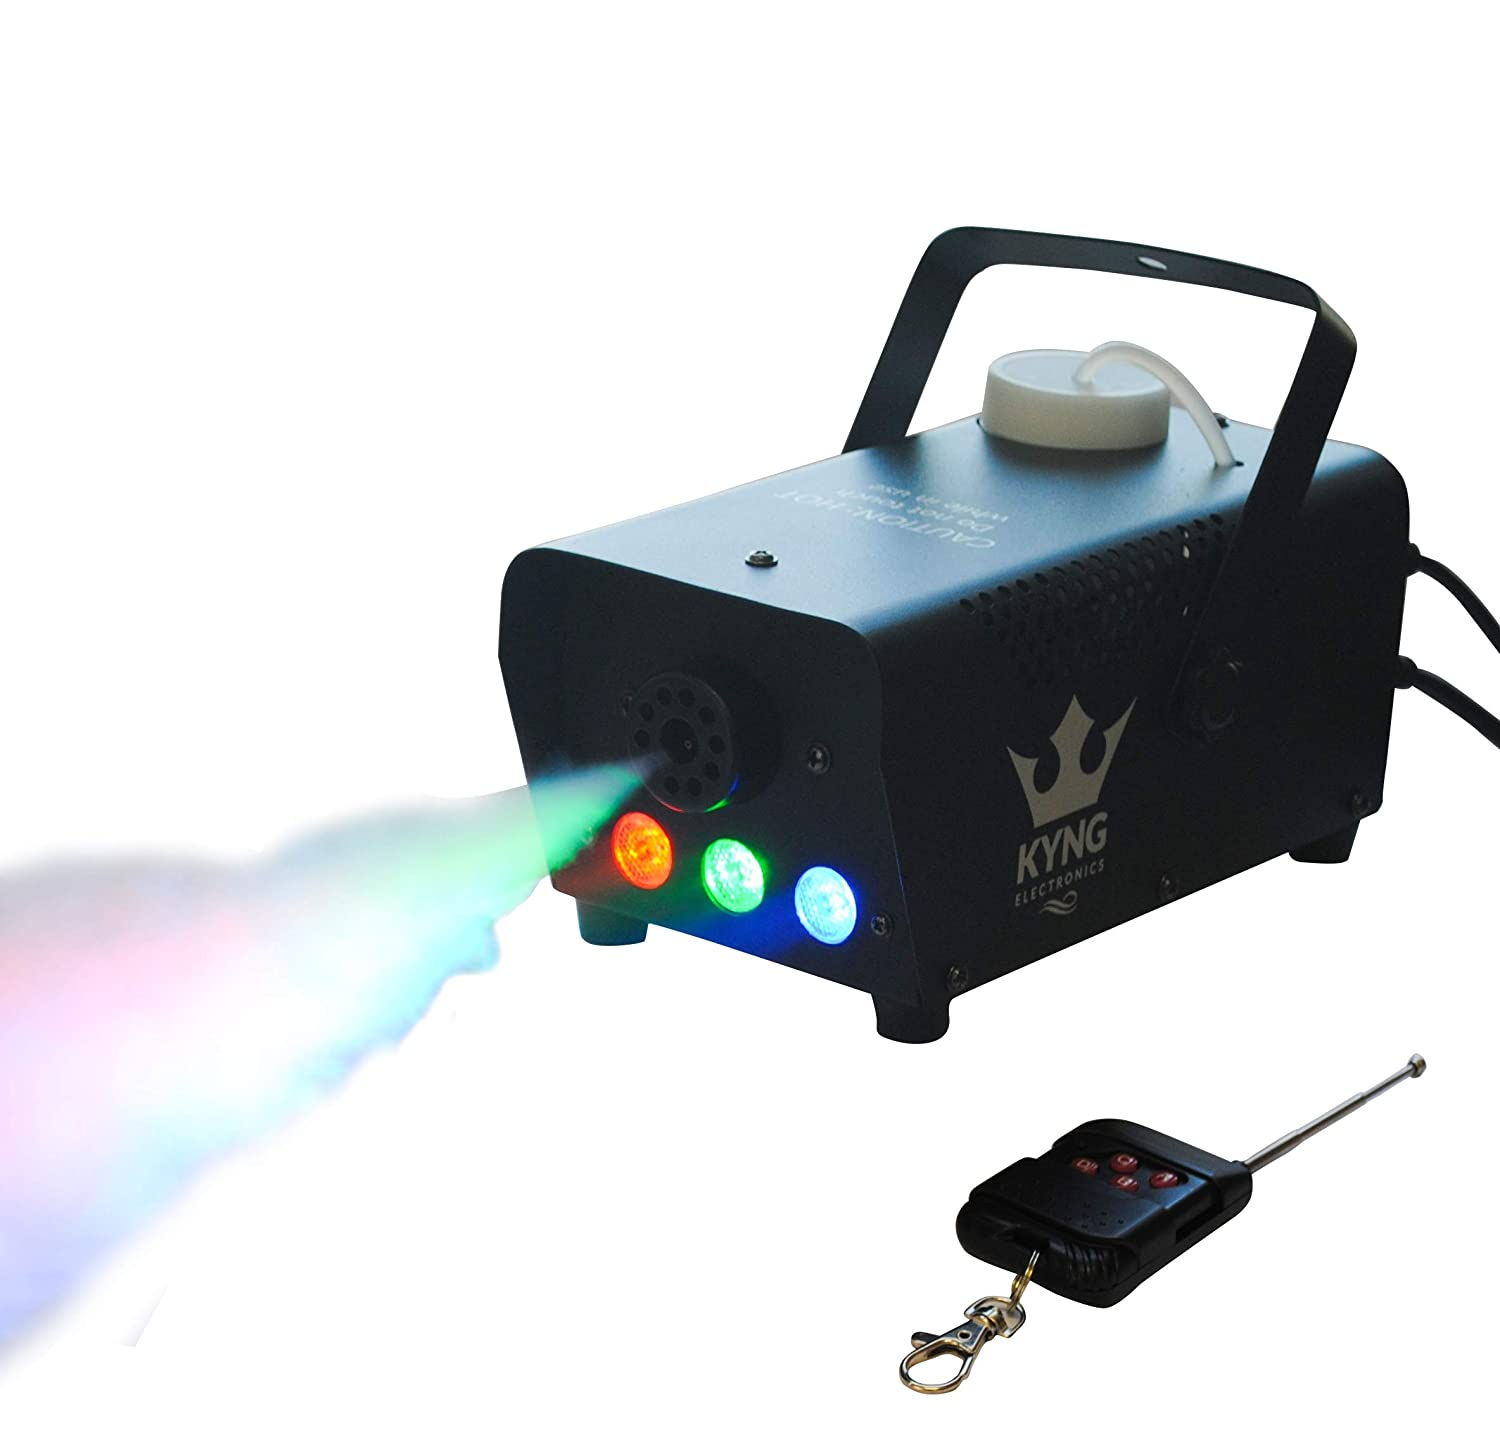 Fog Smoke Haze Machine 400W + LED Lights + Wired/Wireless Remotes- Portable for DJ, Halloween, Party, Concerts, Weddings, Christmas, Holidays, Mist Maker PREMIUM FOG MACHINE by KYNG ELECTRONICS